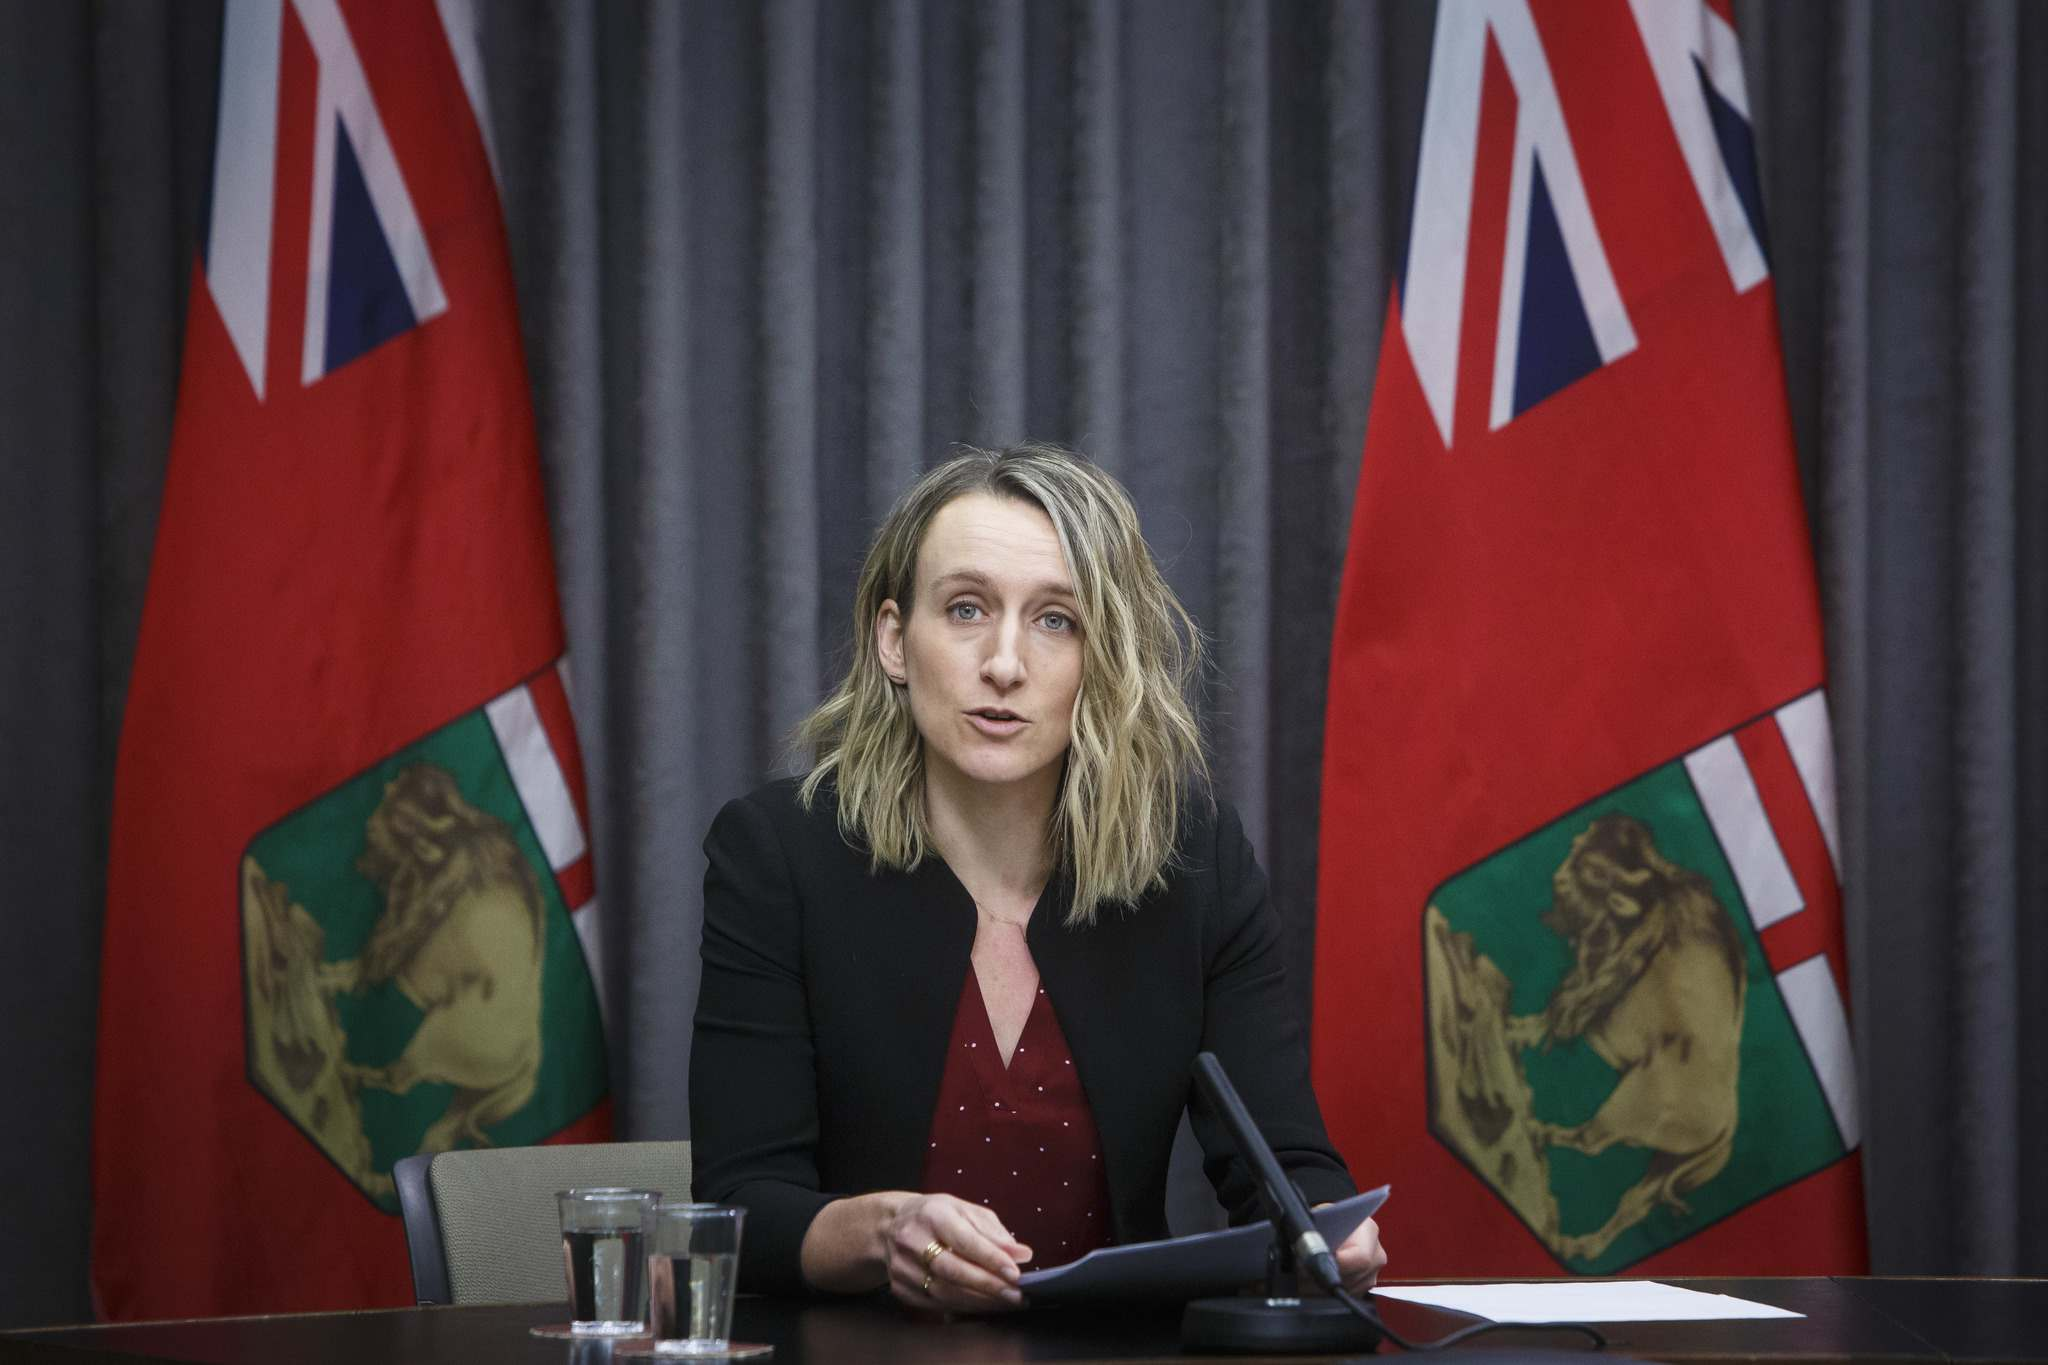 Dr. Joss Reimer, medical lead on the province's vaccine committee, says Manitoba is still reviewing the scientific evidence about delaying second doses. (Mike Deal / Winnipeg Free Press)